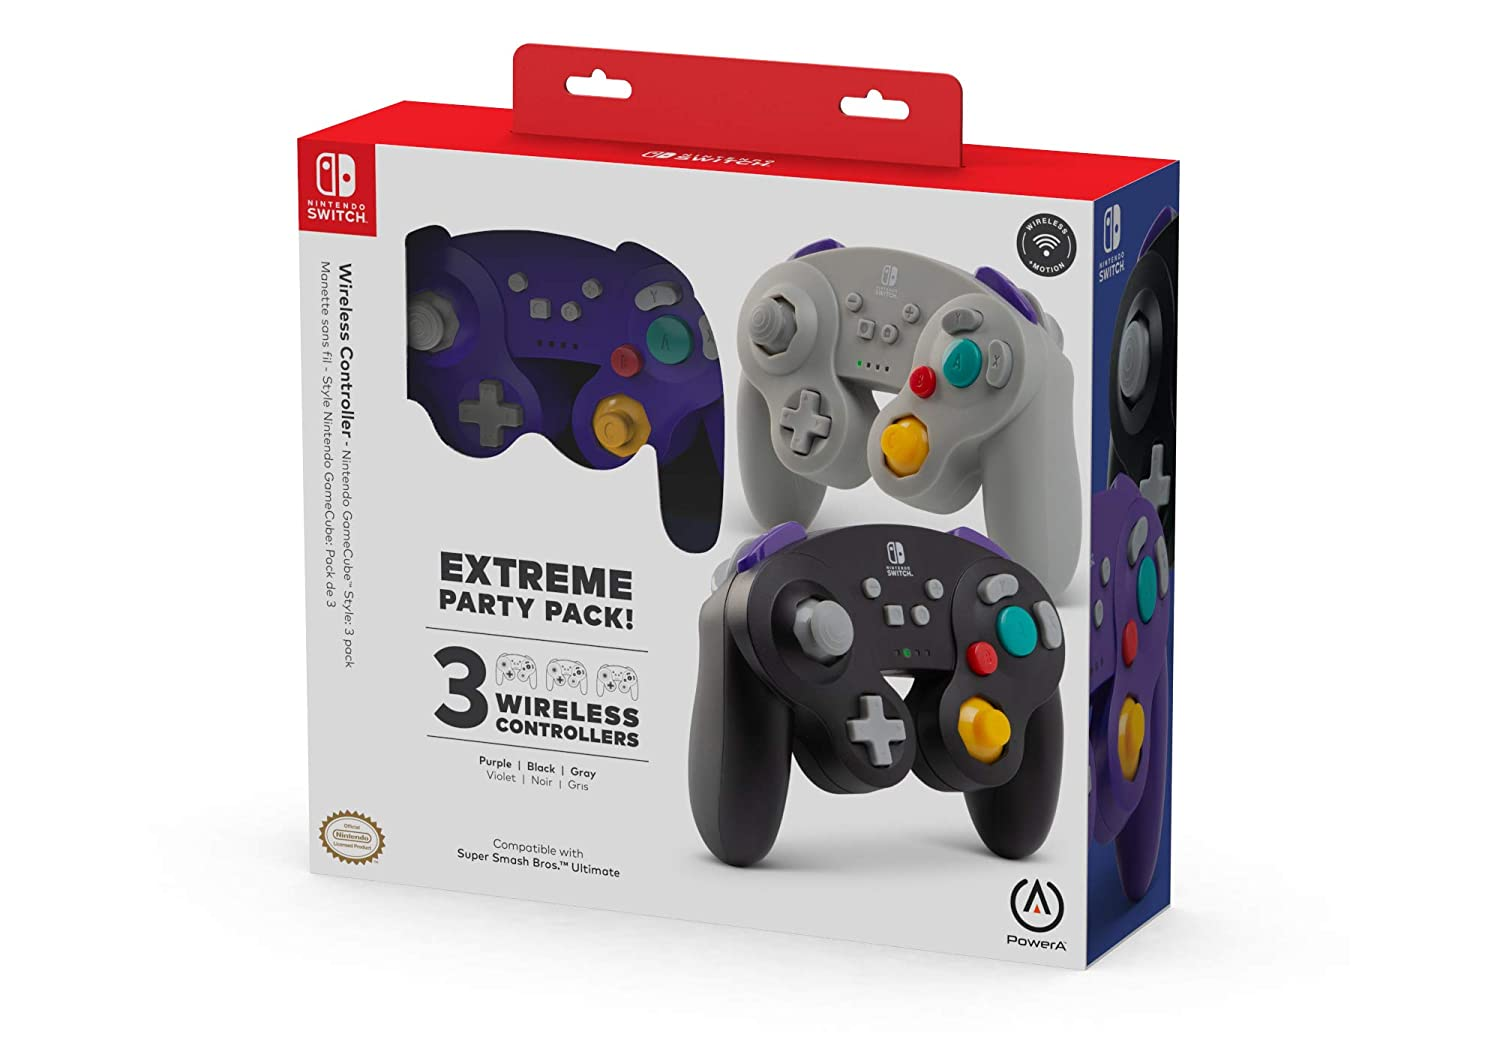 PowerA Extreme Party Pack! Wireless Controller for Nintendo Switch - GameCube Style: 3 Pack - Nintendo Switch